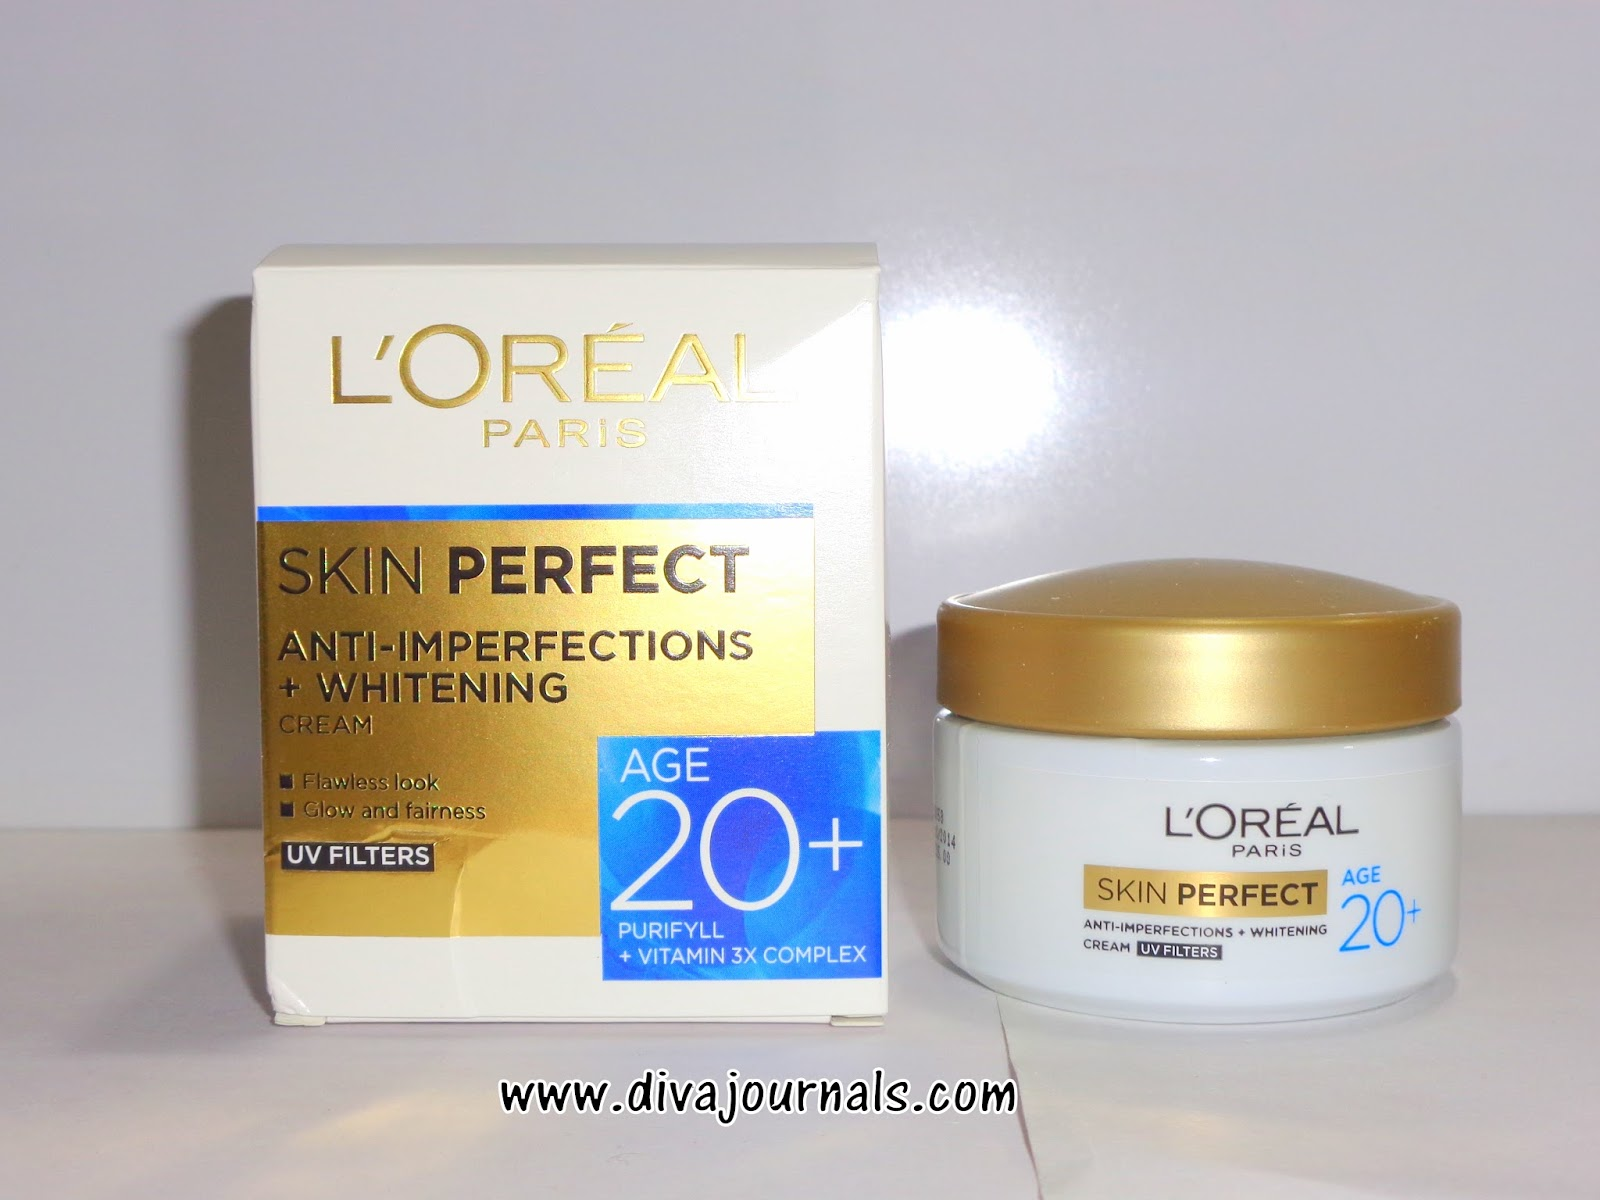 Loreal Paris Skin Perfect Anti-Imperfections+Whitening Cream for Age 20+